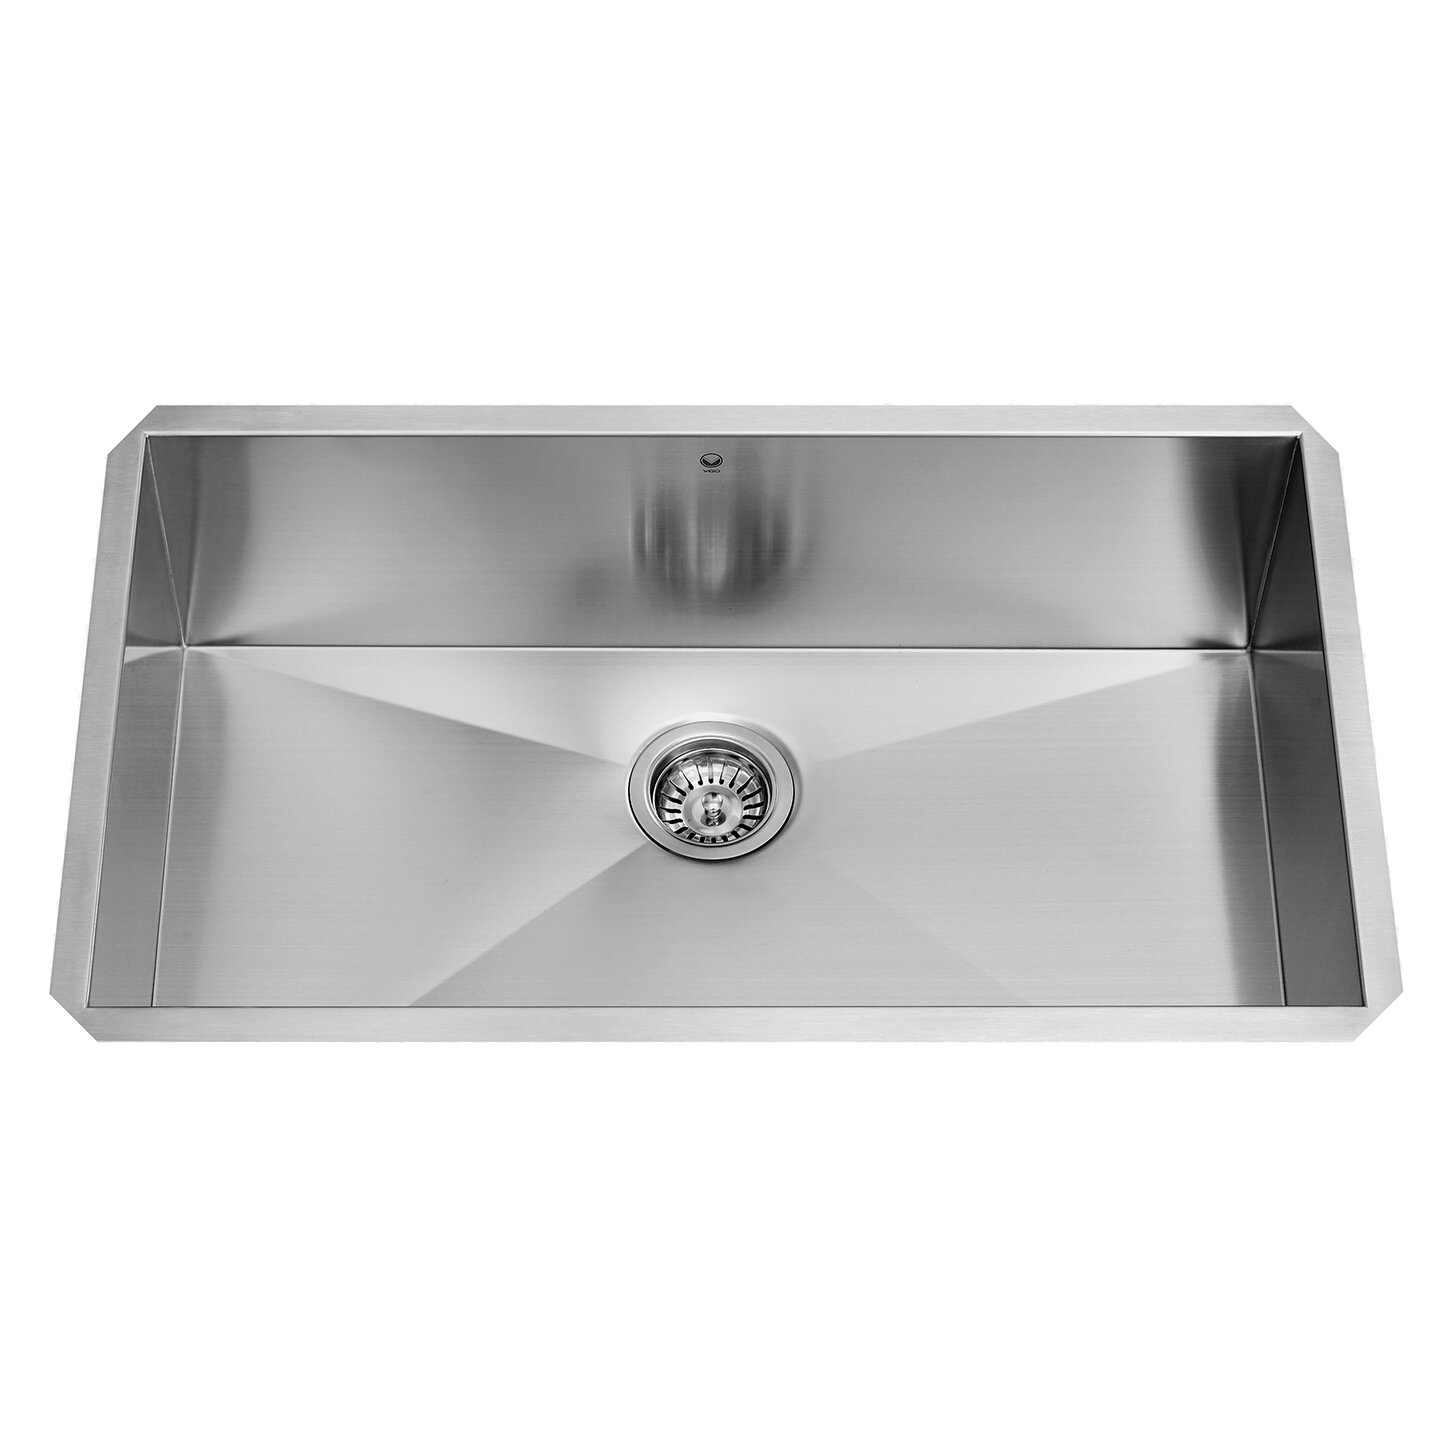 16 Gauge Stainless Steel Sink : ... Single Bowl 16 Gauge Stainless Steel Kitchen Sink & Reviews Wayfair